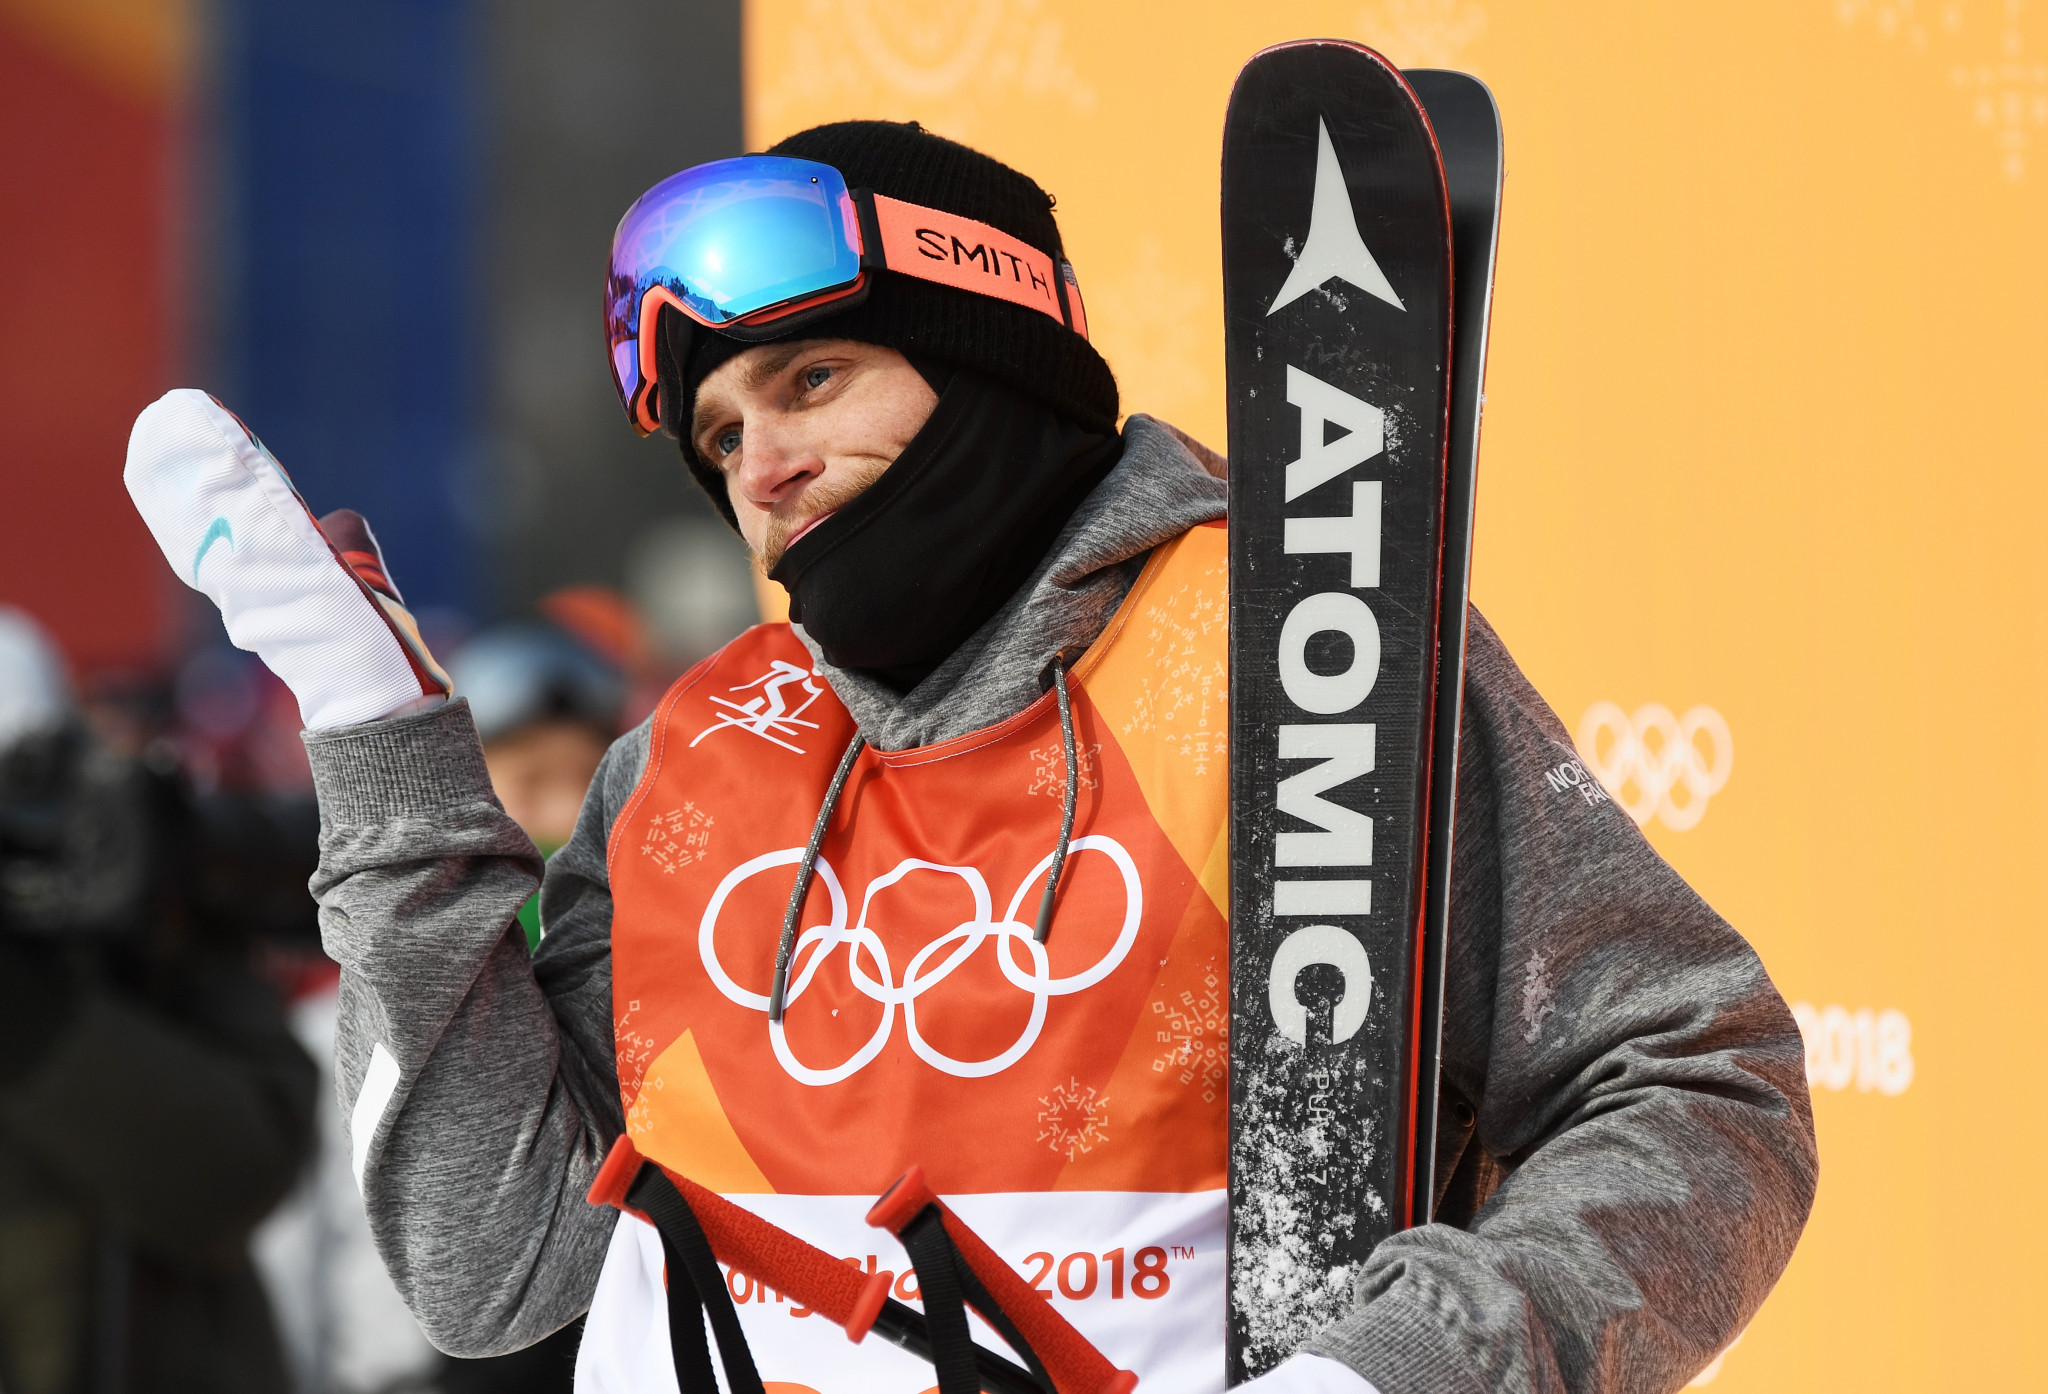 """Pyeongchang 2018 skier Kenworthy accused of """"cultural colonialism"""" after dog adoption"""